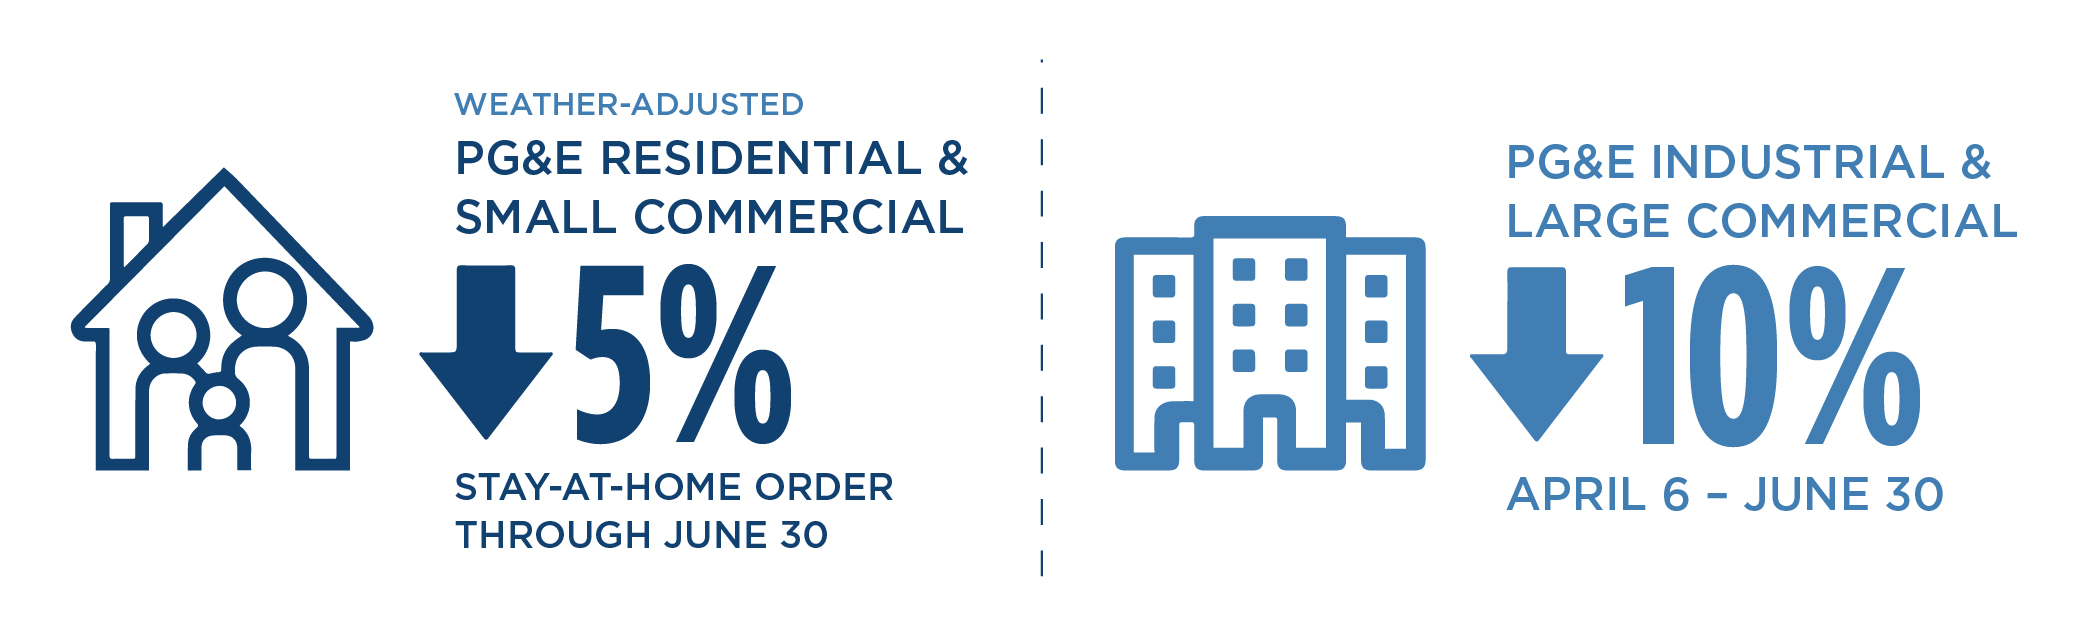 Infographic showing the decline of PG&E Residential & Small Commercial demand by 5% and Industrial & Large Commercial demand by 10% during the stay-at-home order through June.